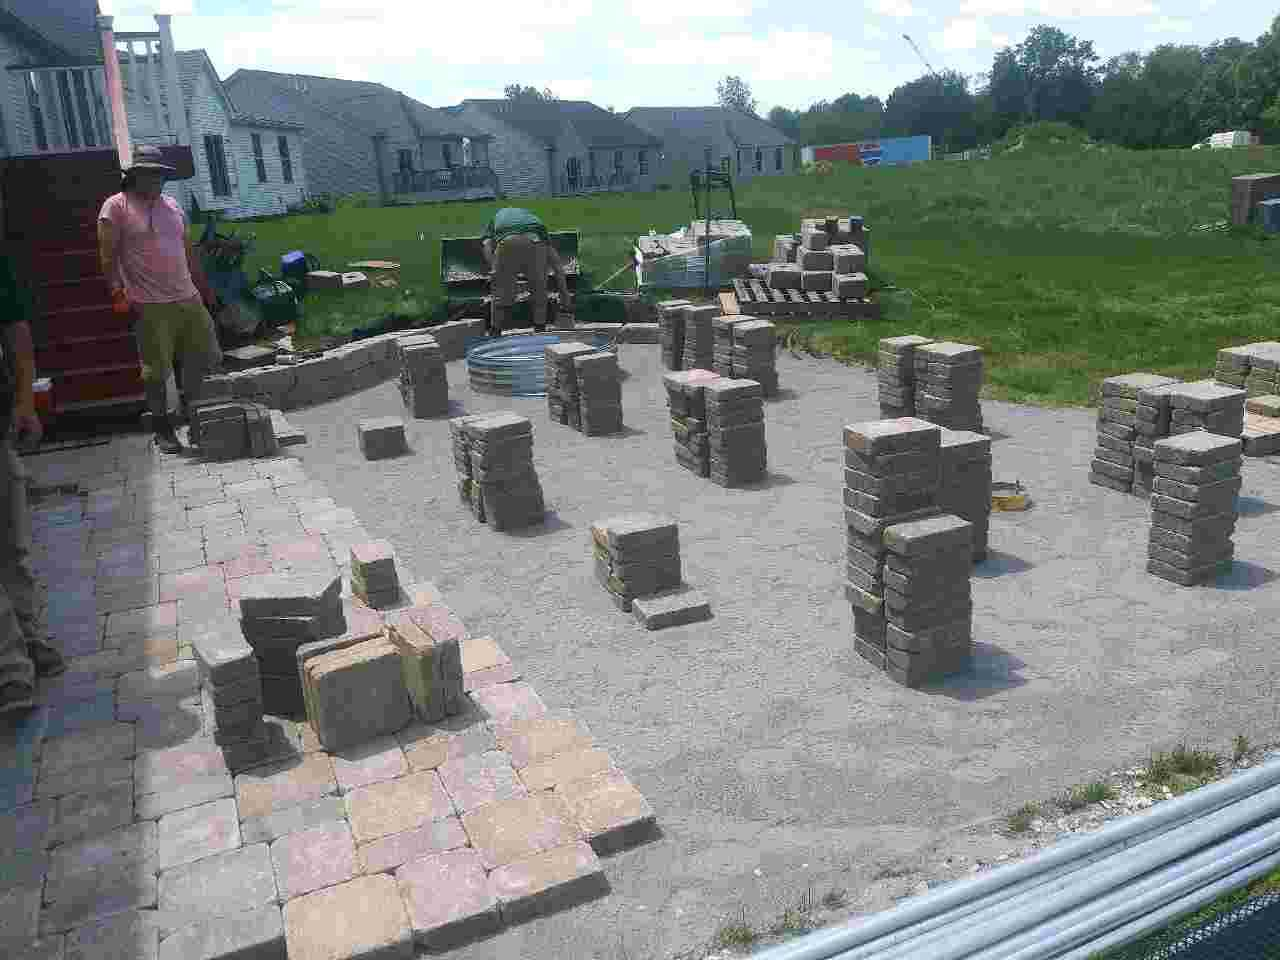 Installing paver patio and landscape in a backyard.